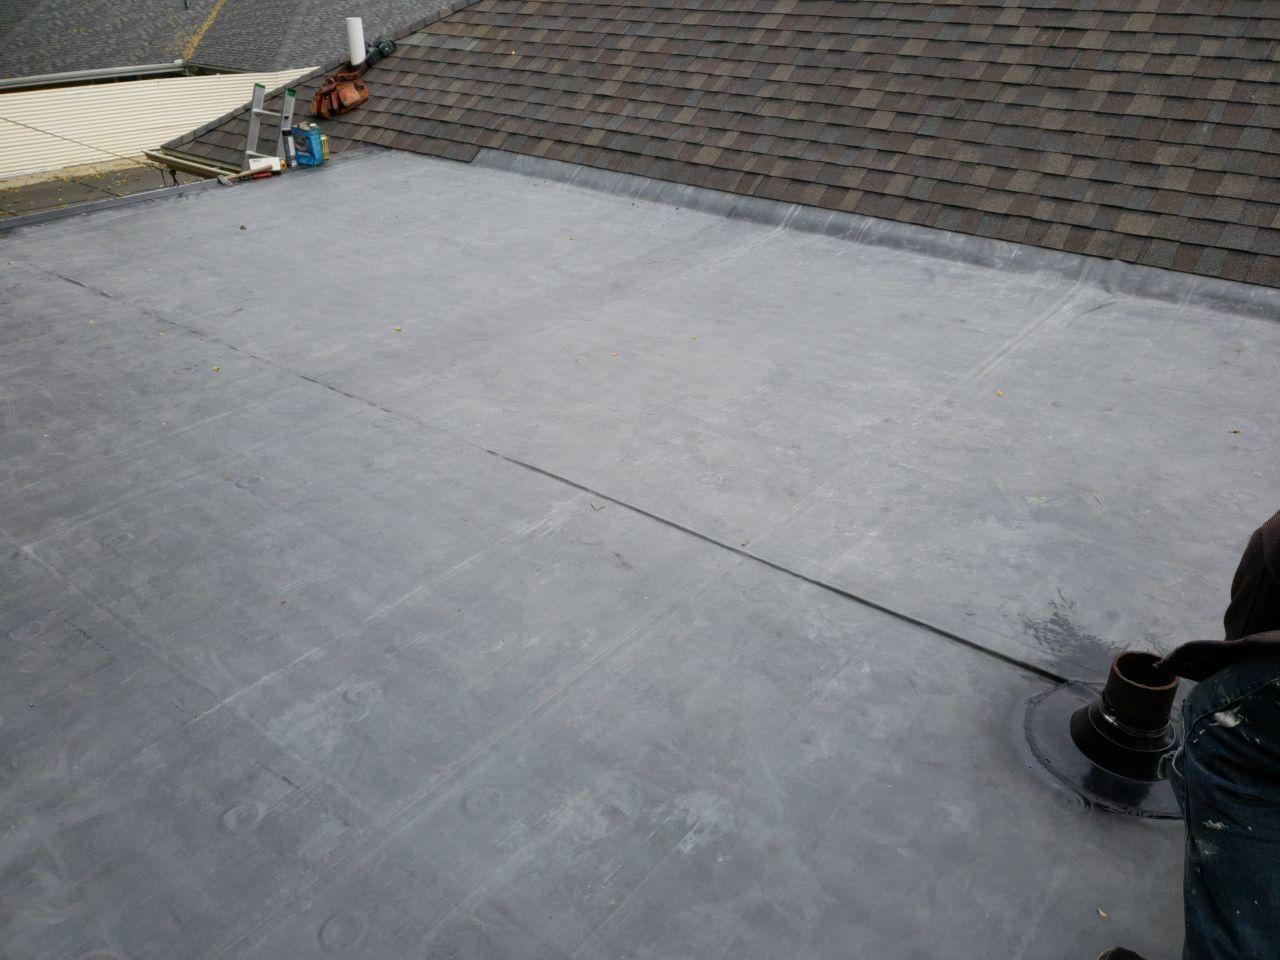 Flat Roof Replacement in Rockford, IL - After Photo